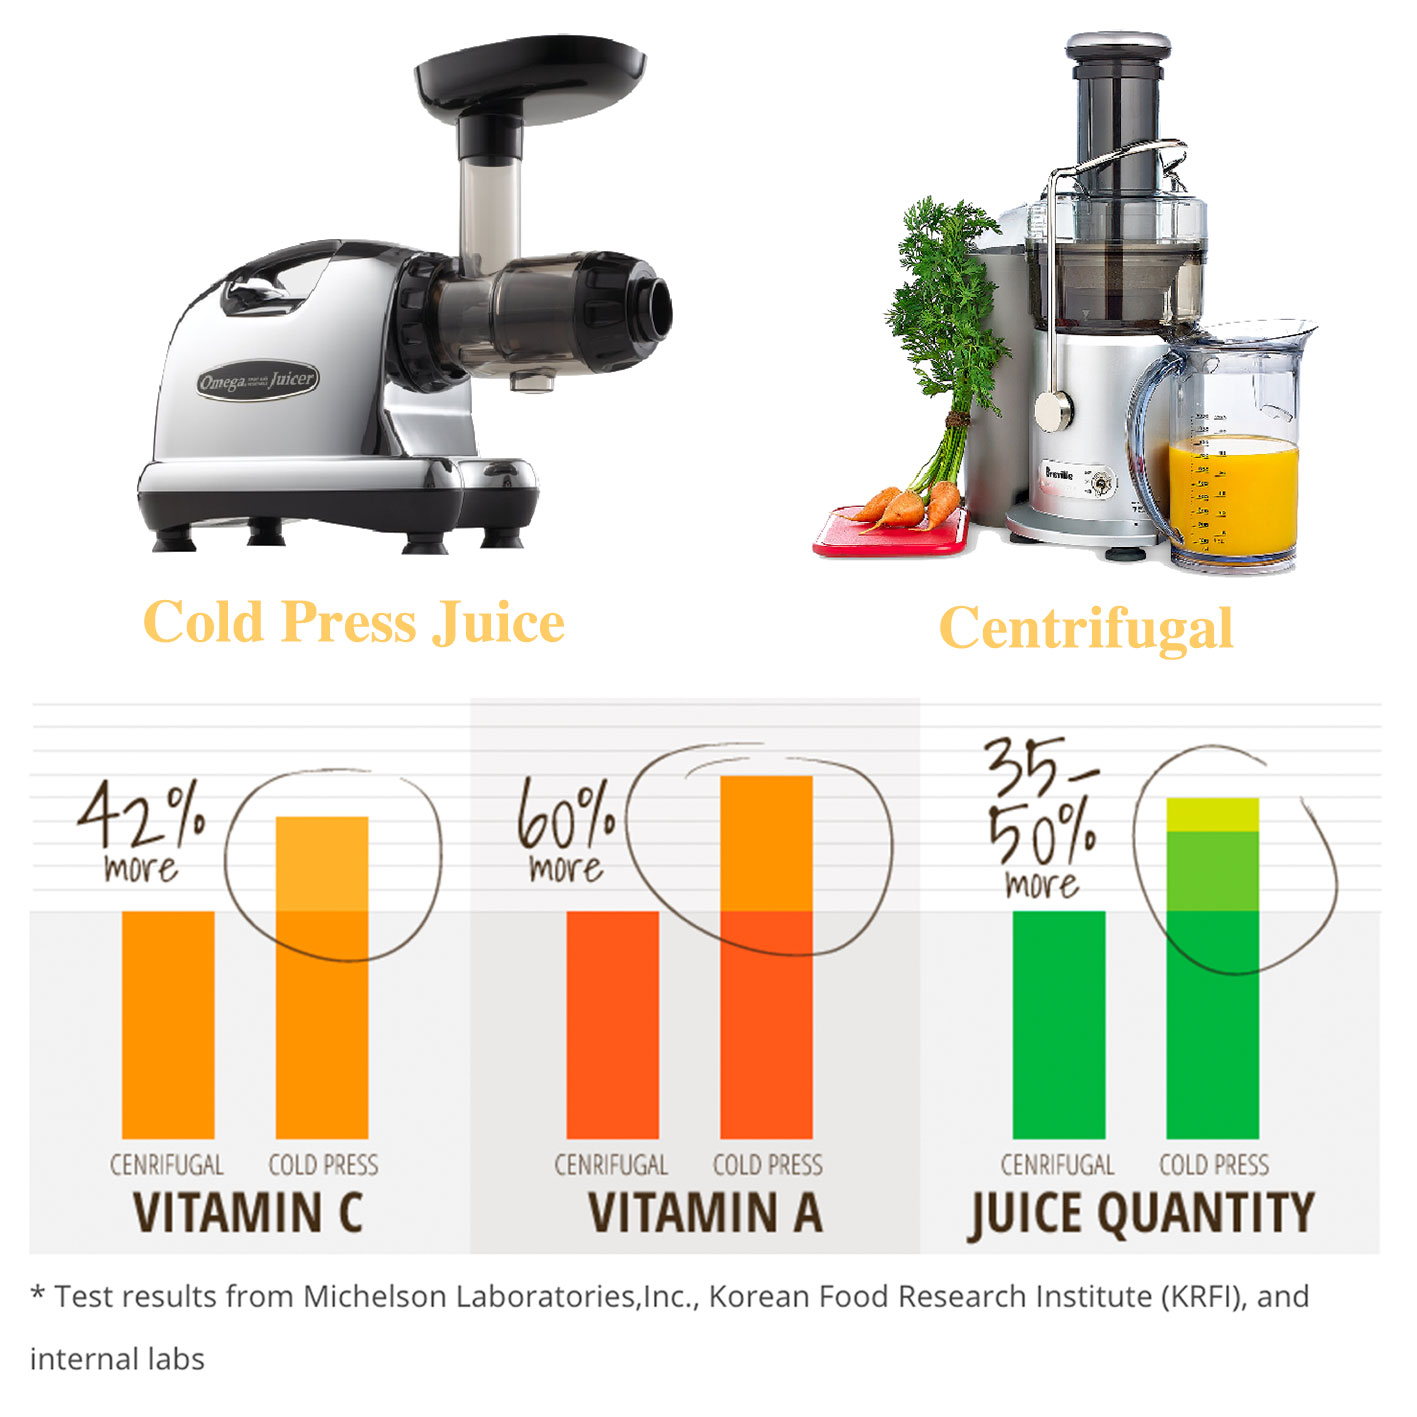 Masticating Juicer Or Centrifugal Juicer : Masticating vs. Centrifugal Juicer - Cold Press vs Centrifugal